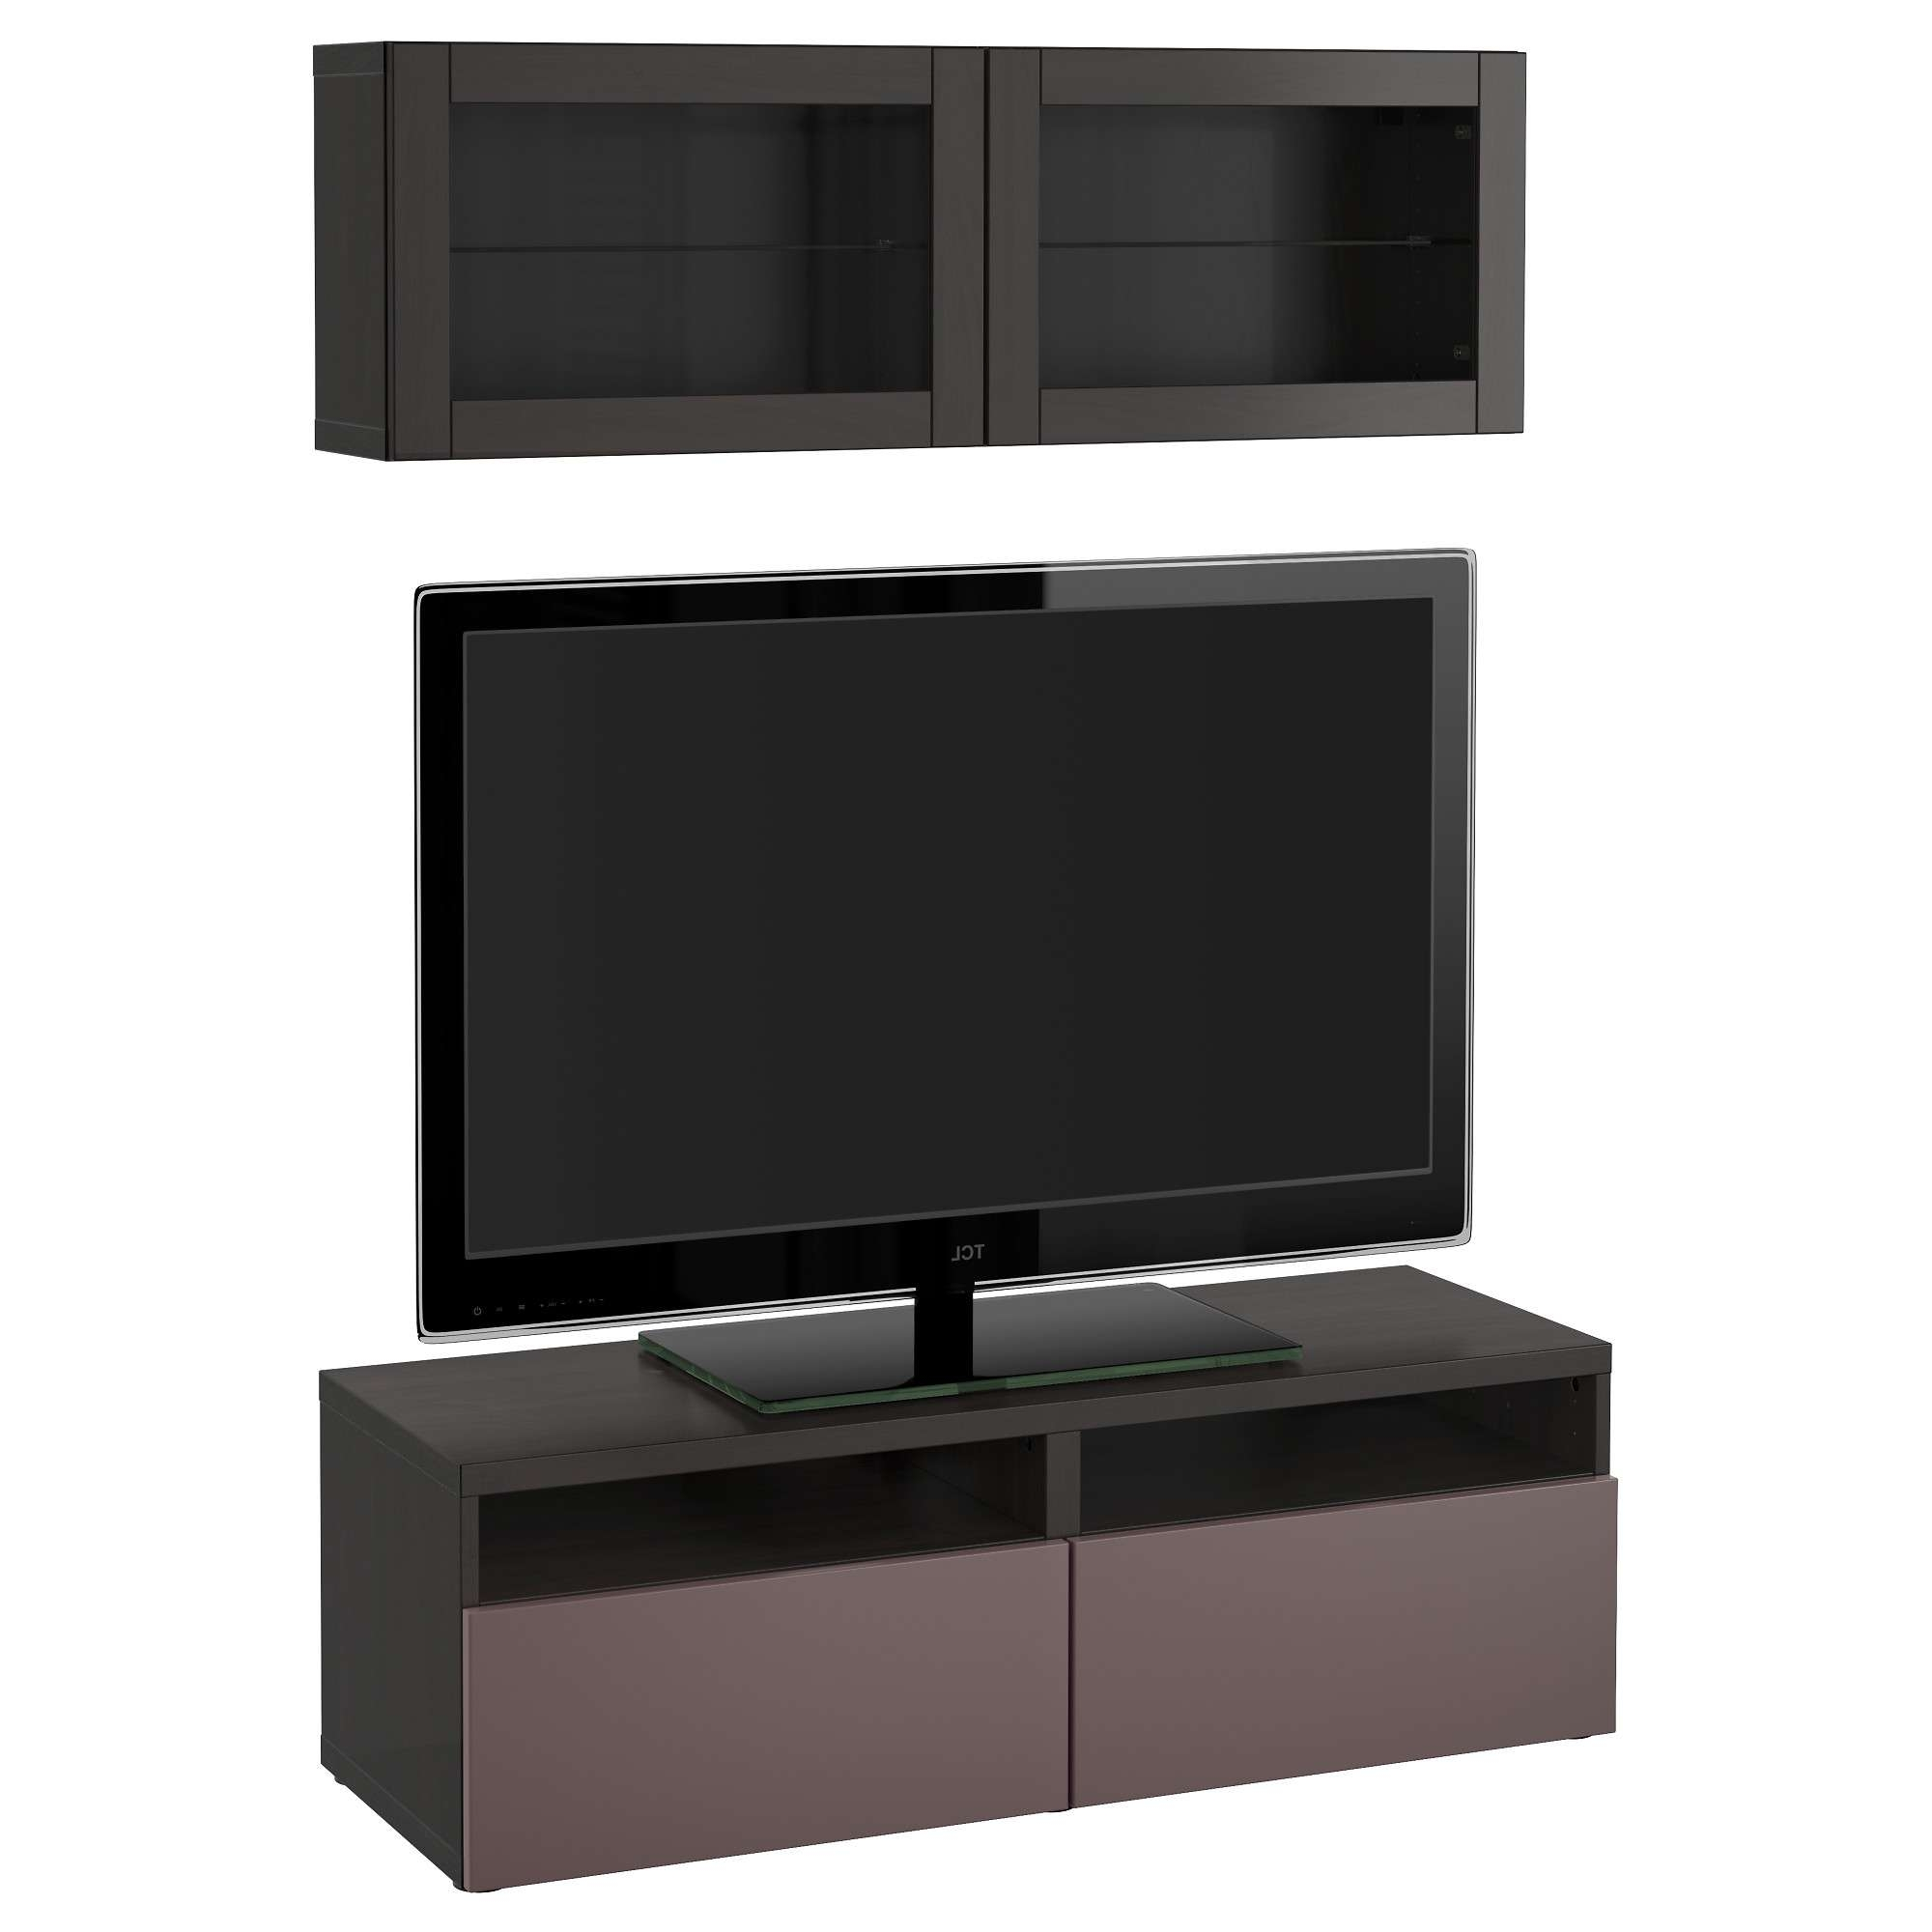 Tv Stands & Tv Units | Ikea Intended For Wall Mounted Tv Cabinets Ikea (View 3 of 20)